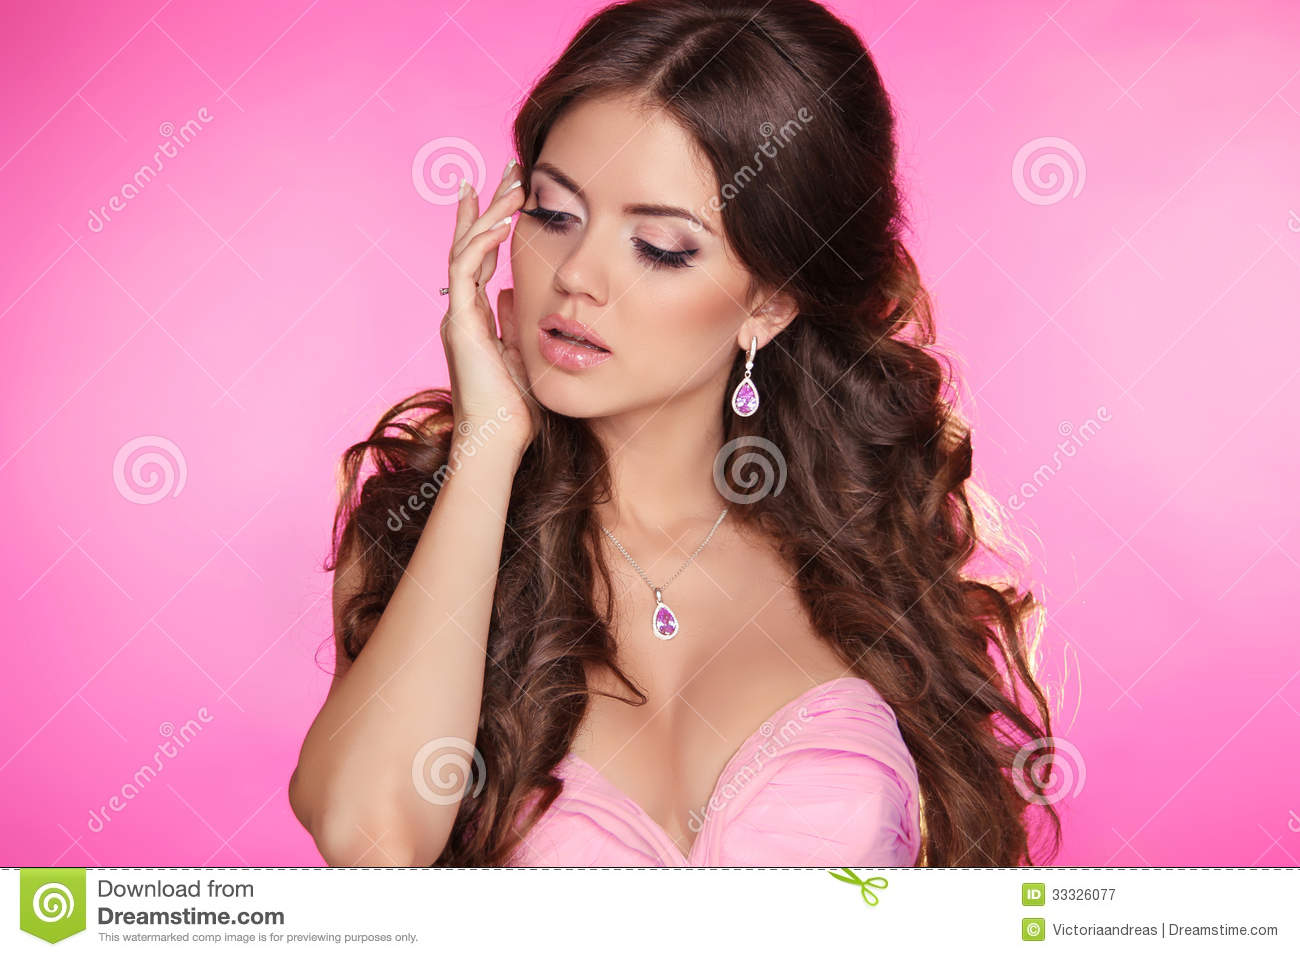 Fashion Beauty Girl Isolated On Pink Background. Gorgeous